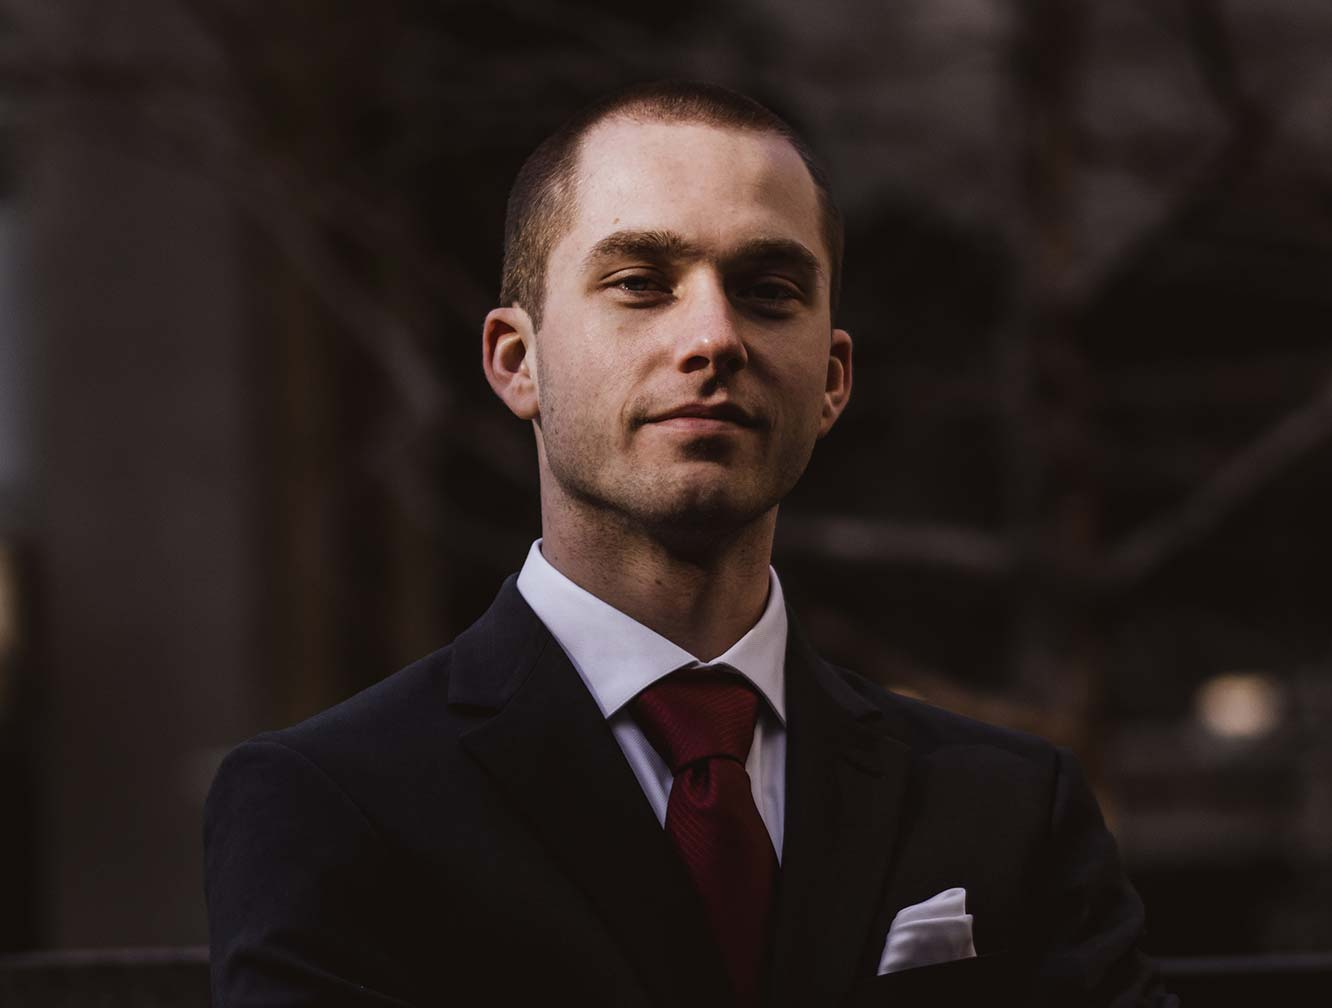 man with shaved head and suit